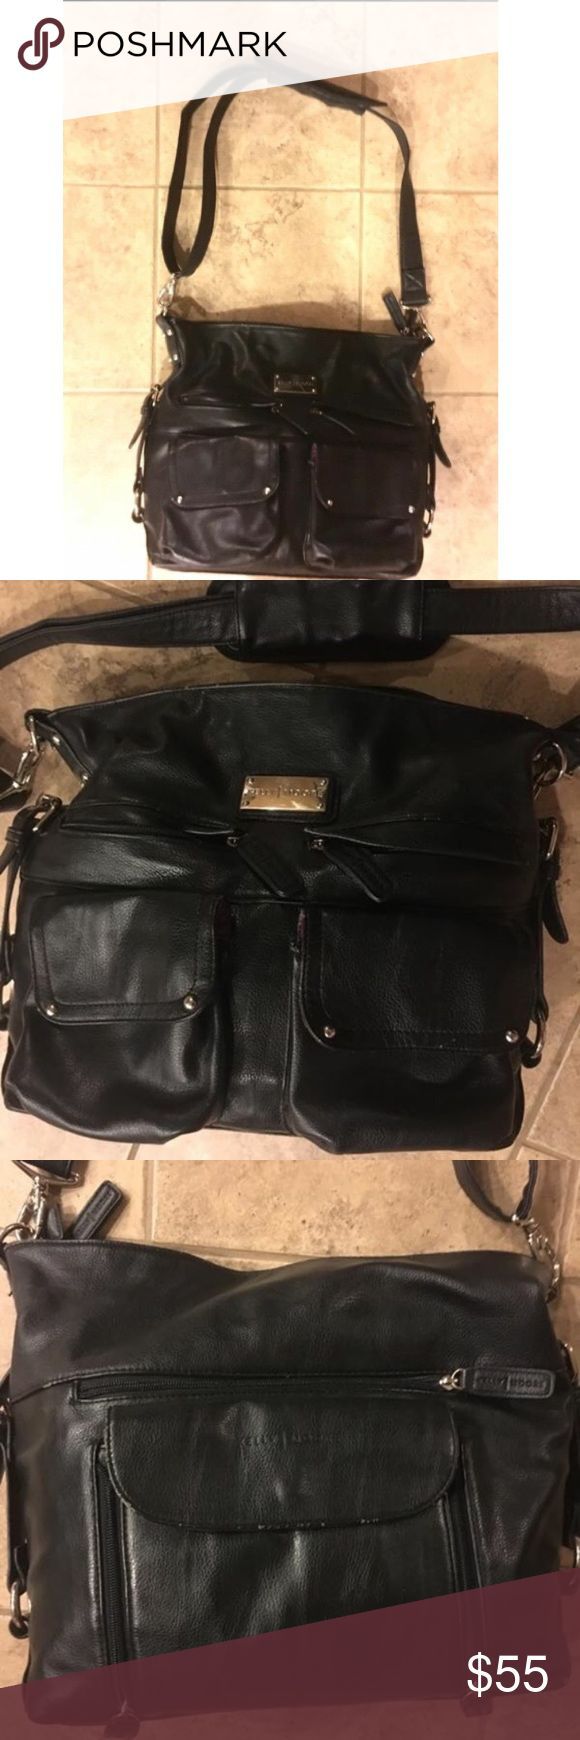 Kelly Moore Crossbody Leather Camera Bag Used for multiple weddings but still in awesome shape! He inside is in great condition and is completely adjustable to fit your gear. Kelly Moore Bags Crossbody Bags